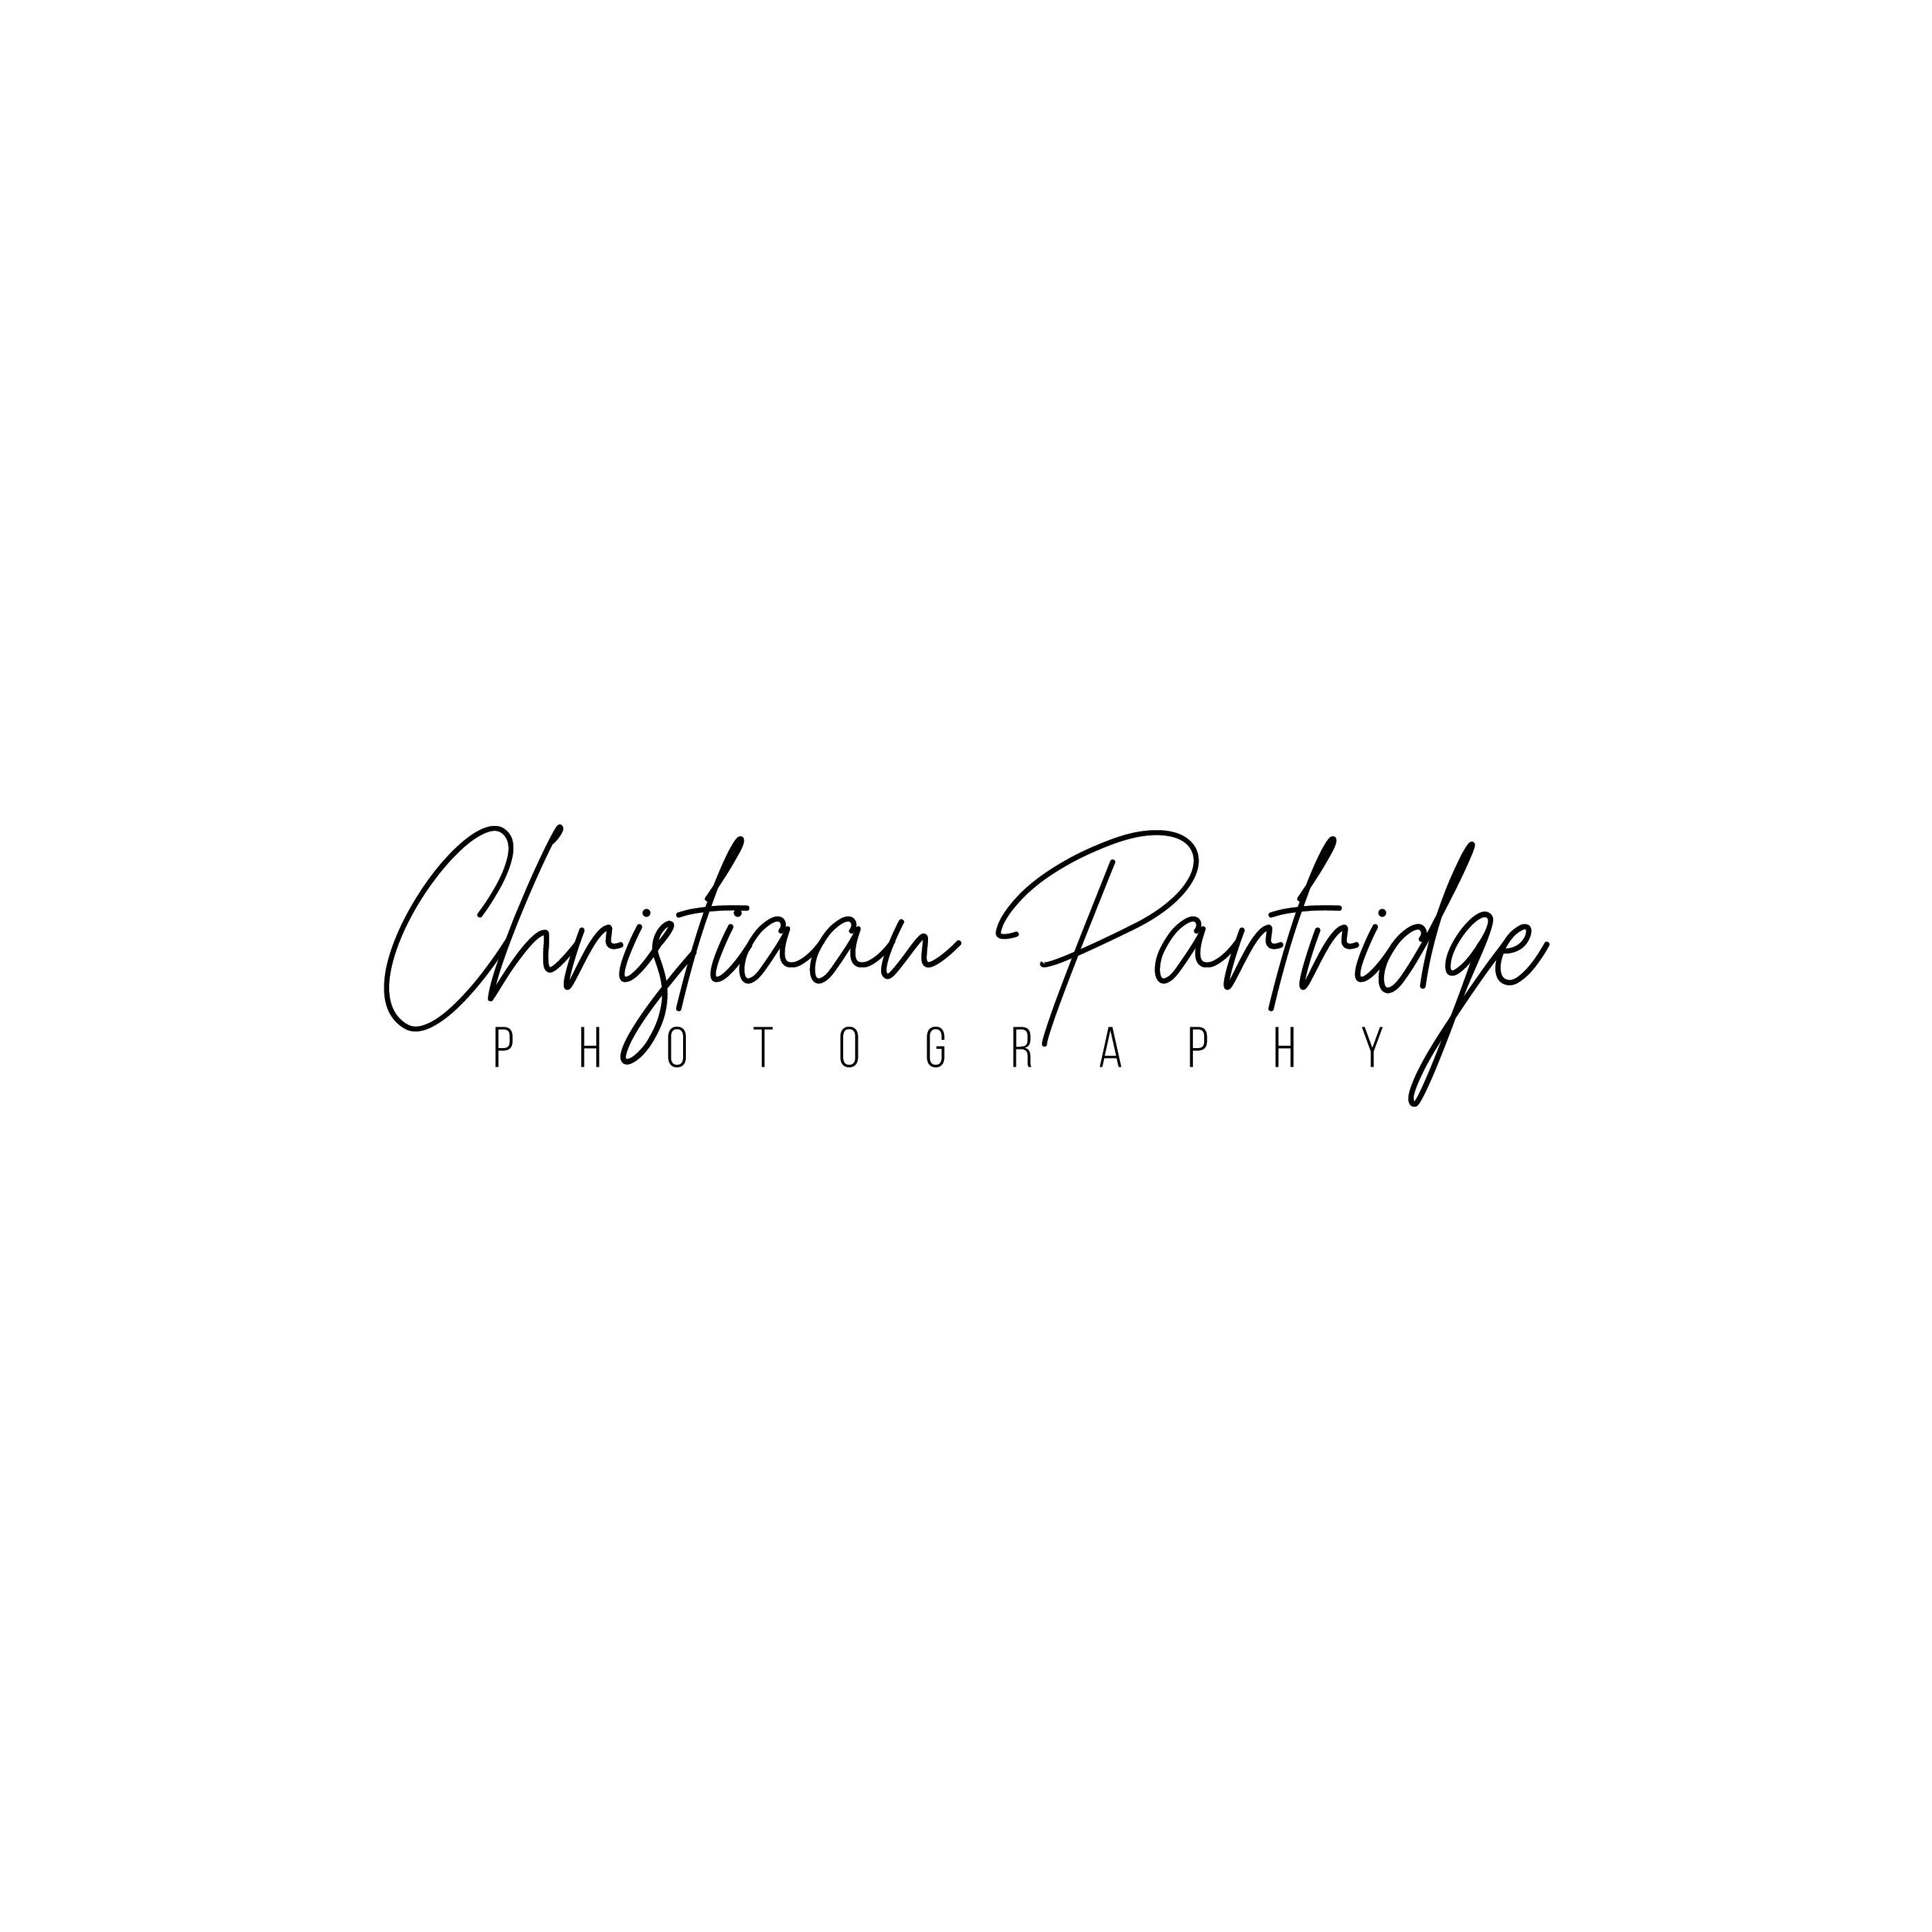 Christiaan Partridge Photography